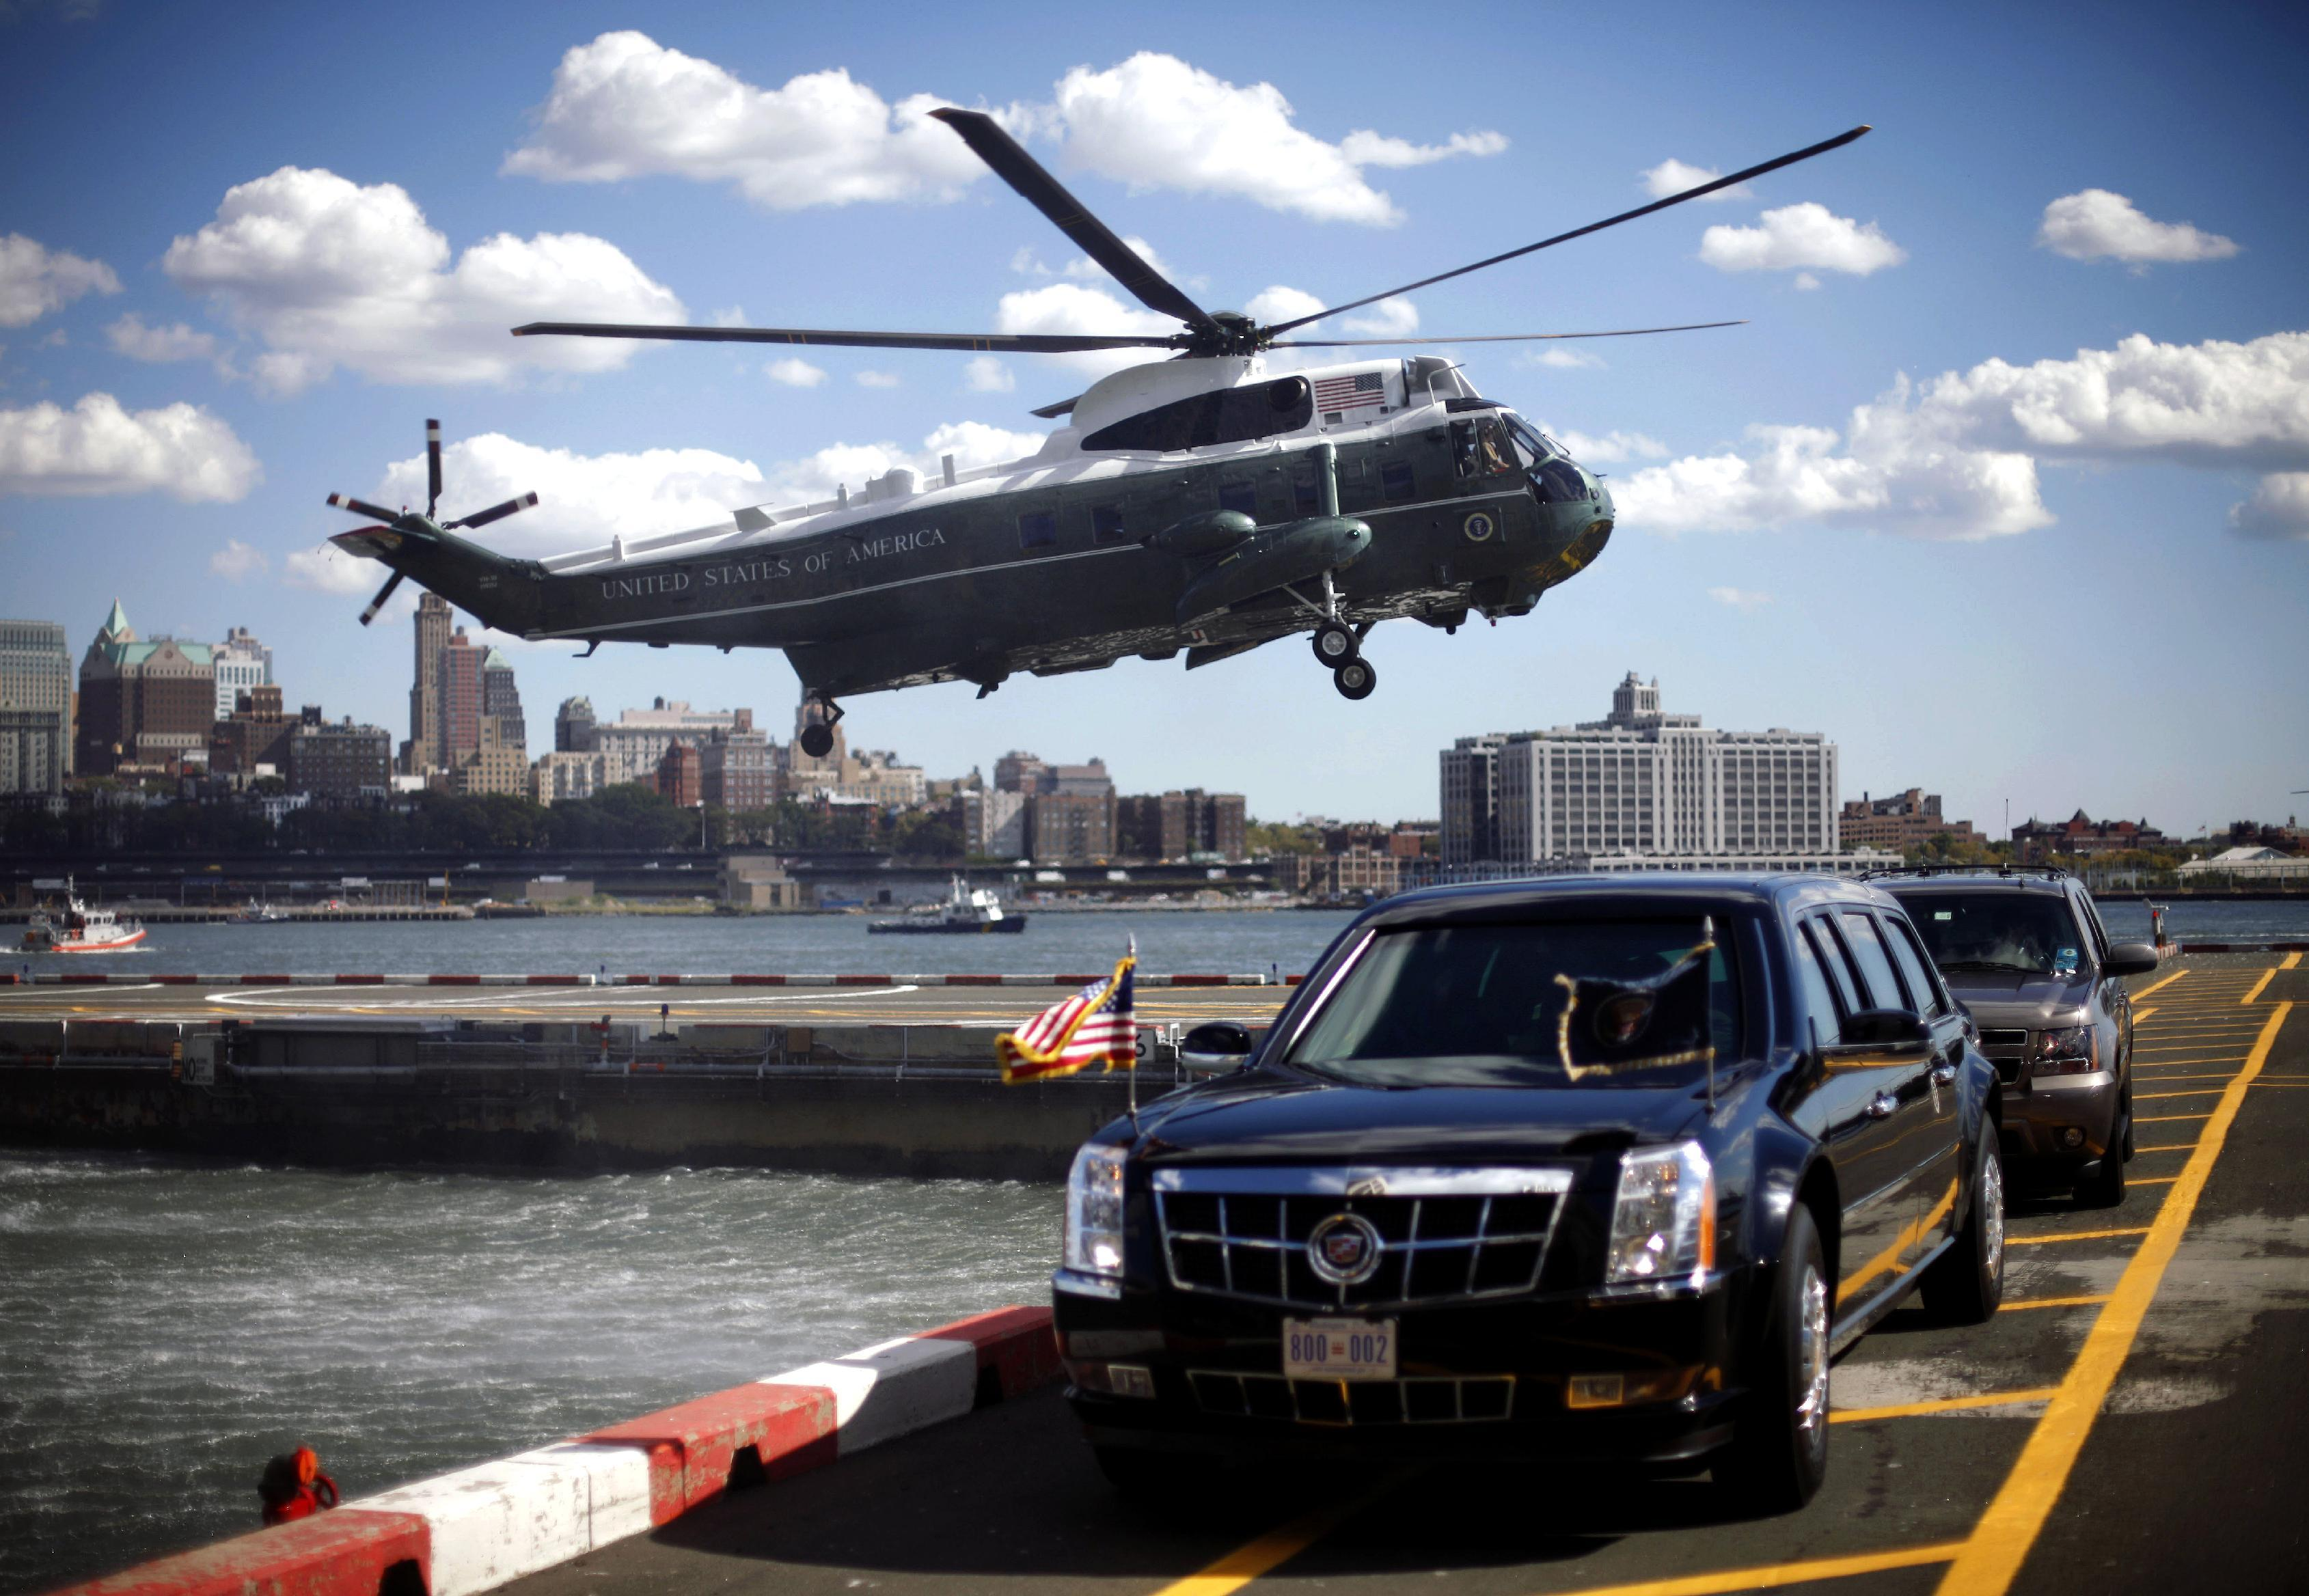 The Marine One helicopter, with President Barack Obama aboard, lands at the Wall Street heliport in New York, Monday, Sept. 24, 2012. (AP Photo/Pablo Martinez Monsivais)